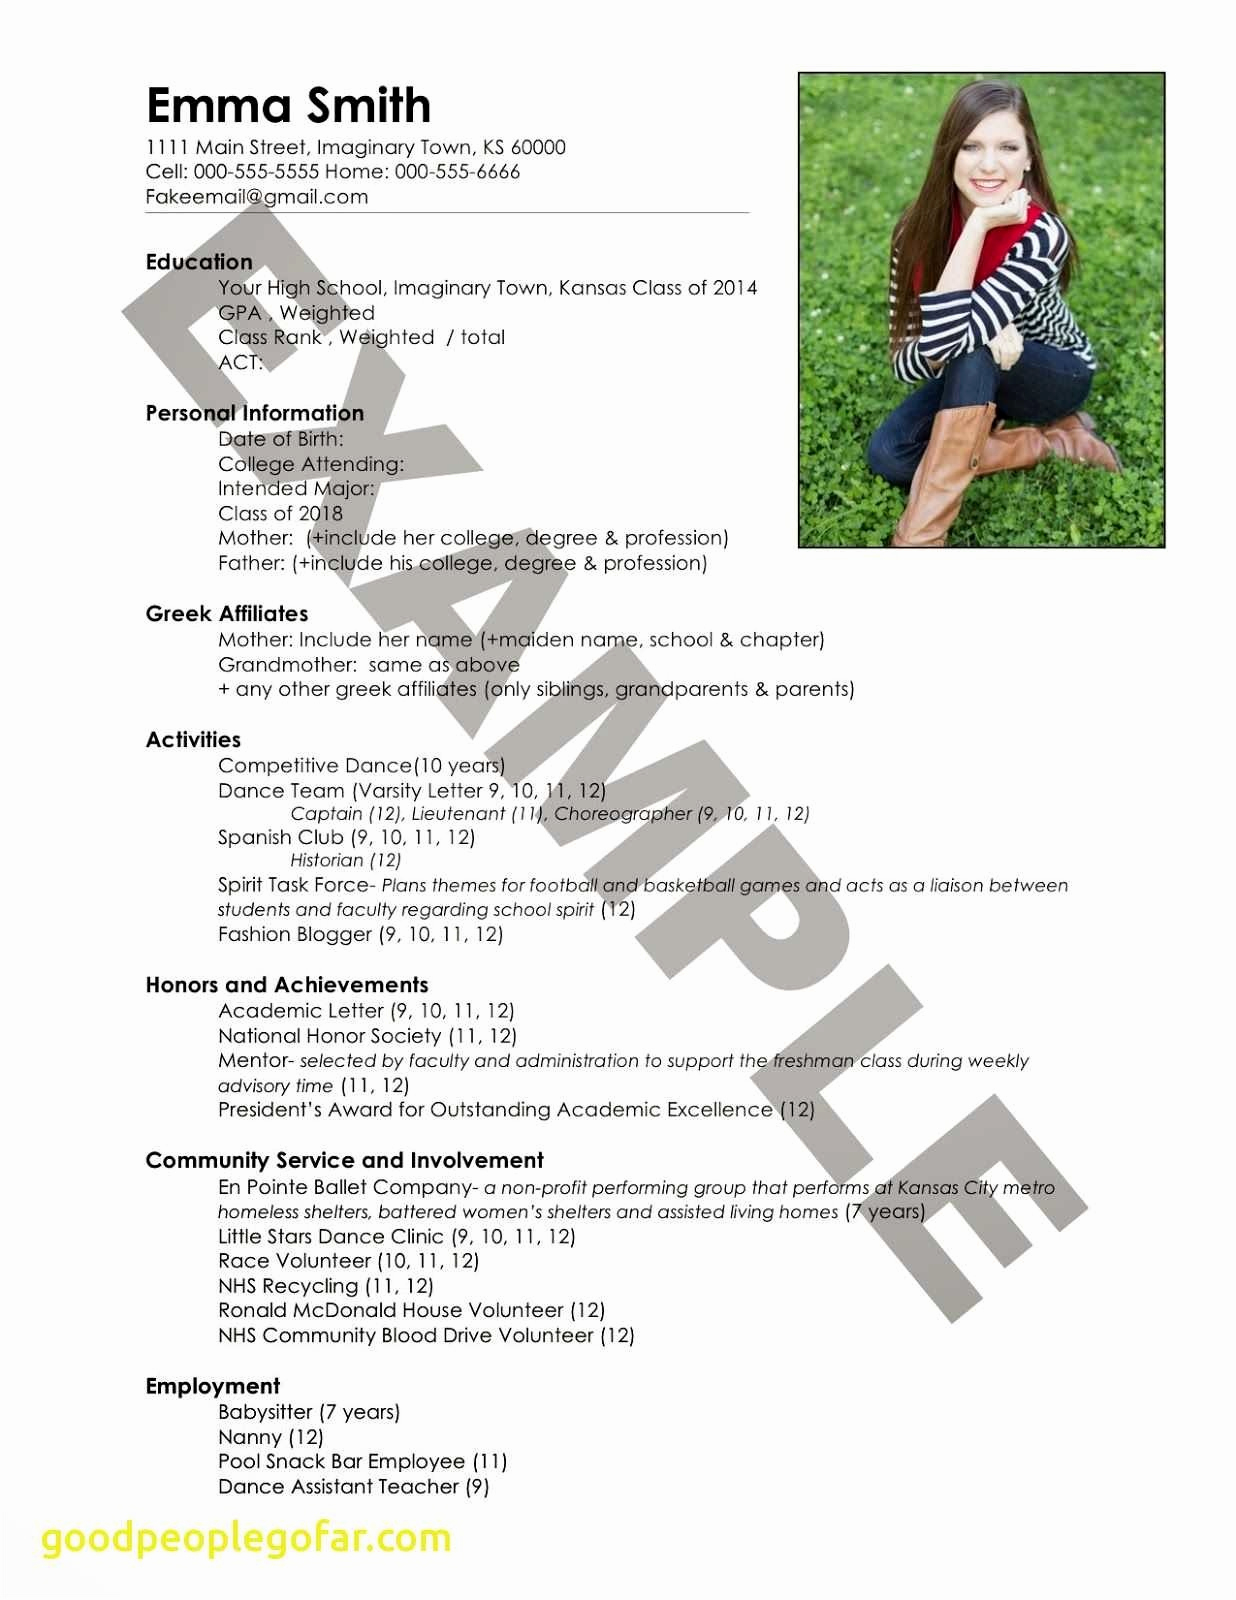 Non Profit Resume - 22 Best Collection Job Resume Templates for High School